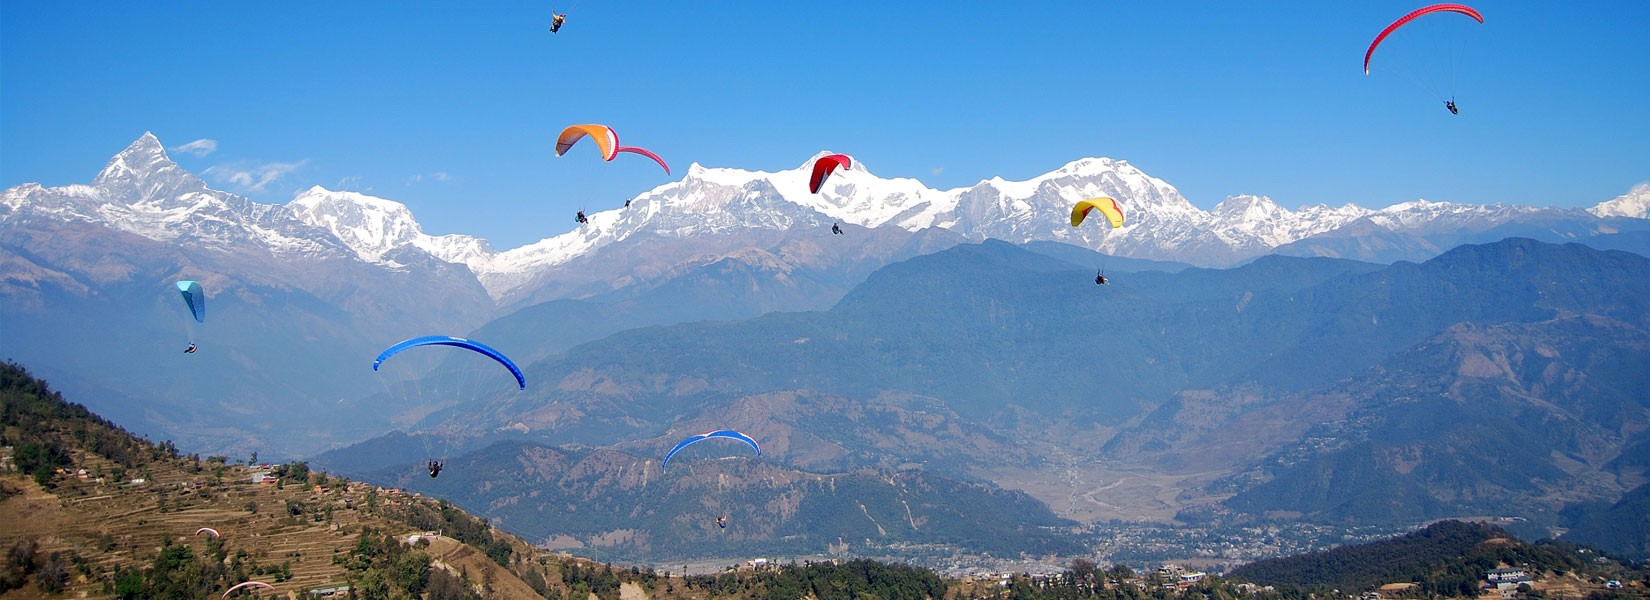 Dhampus Sarangkot Trek with Paragliding